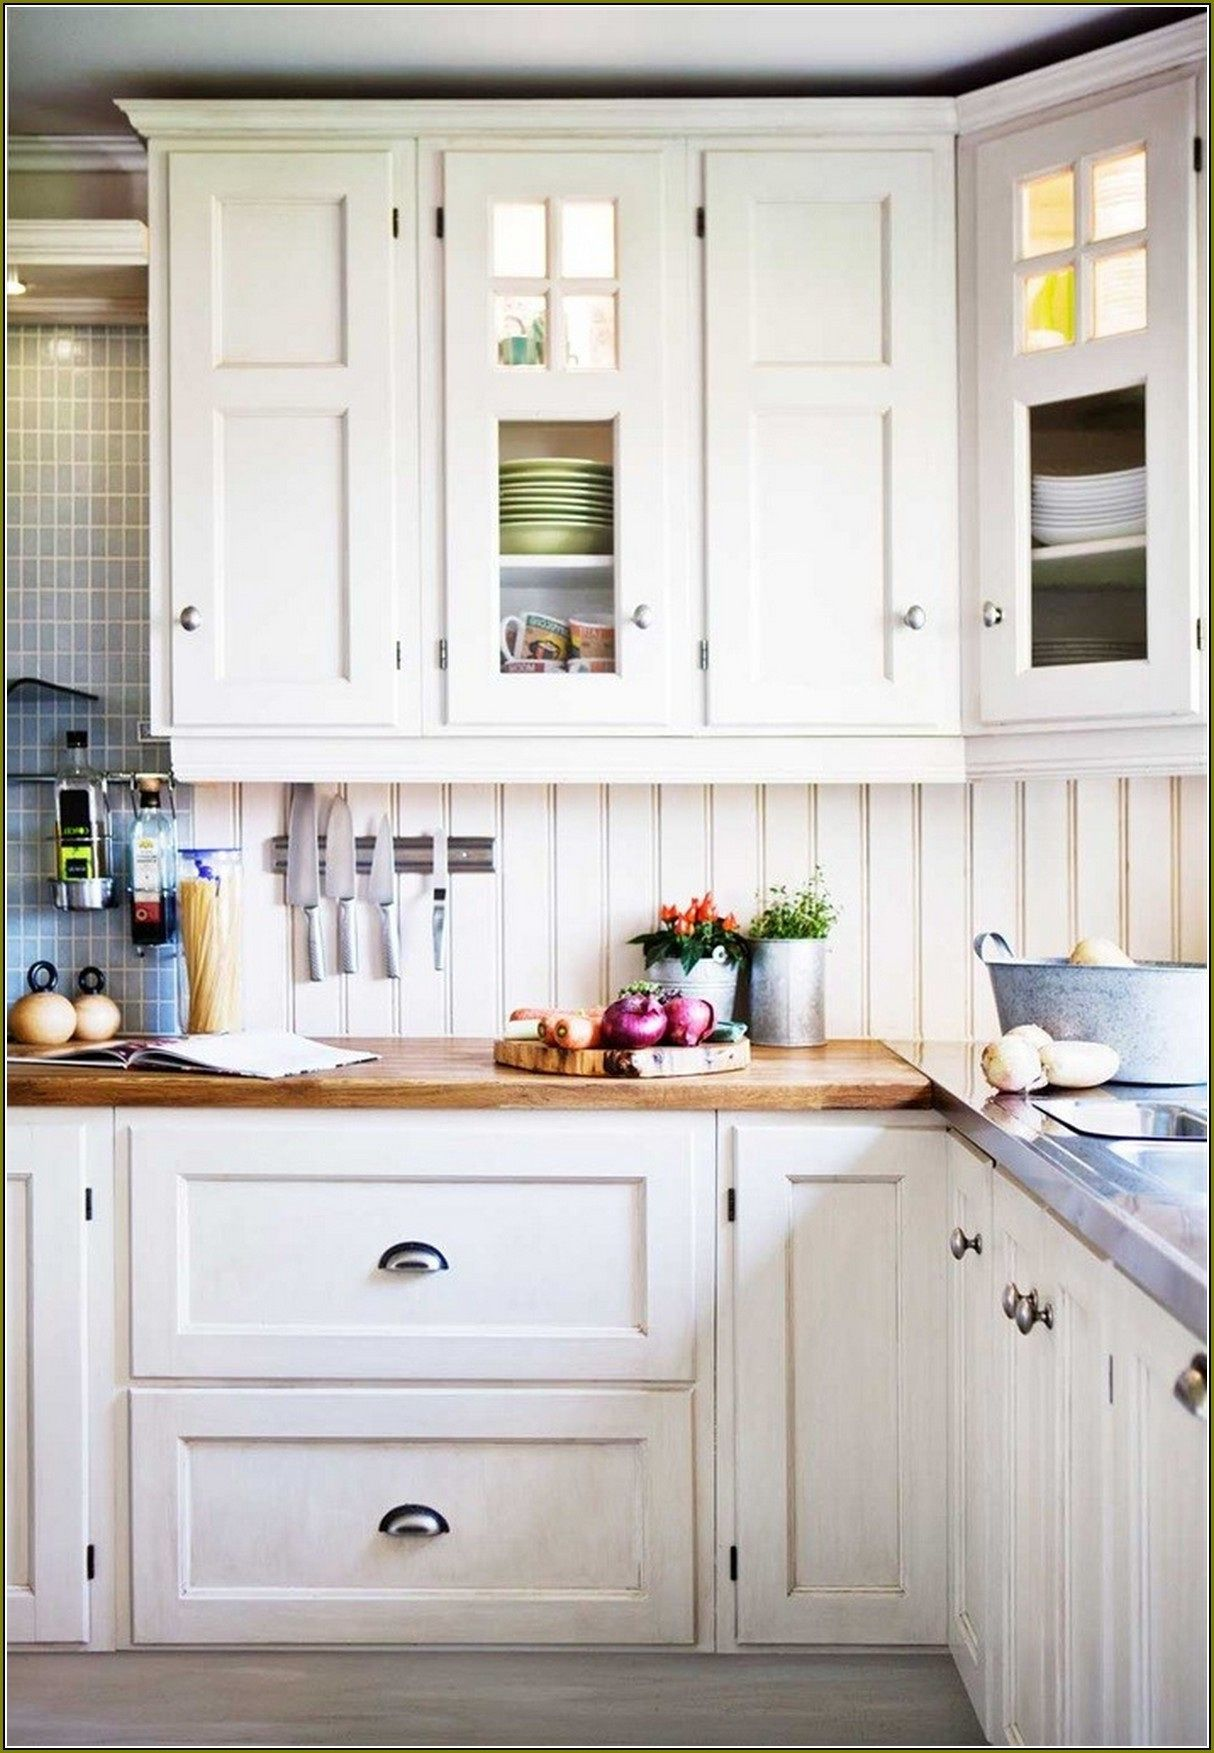 Farmhouse Hardware For Cabinets 2021 Rustic Kitchen Cabinets Best Kitchen Cabinets Kitchen Cabinet Styles